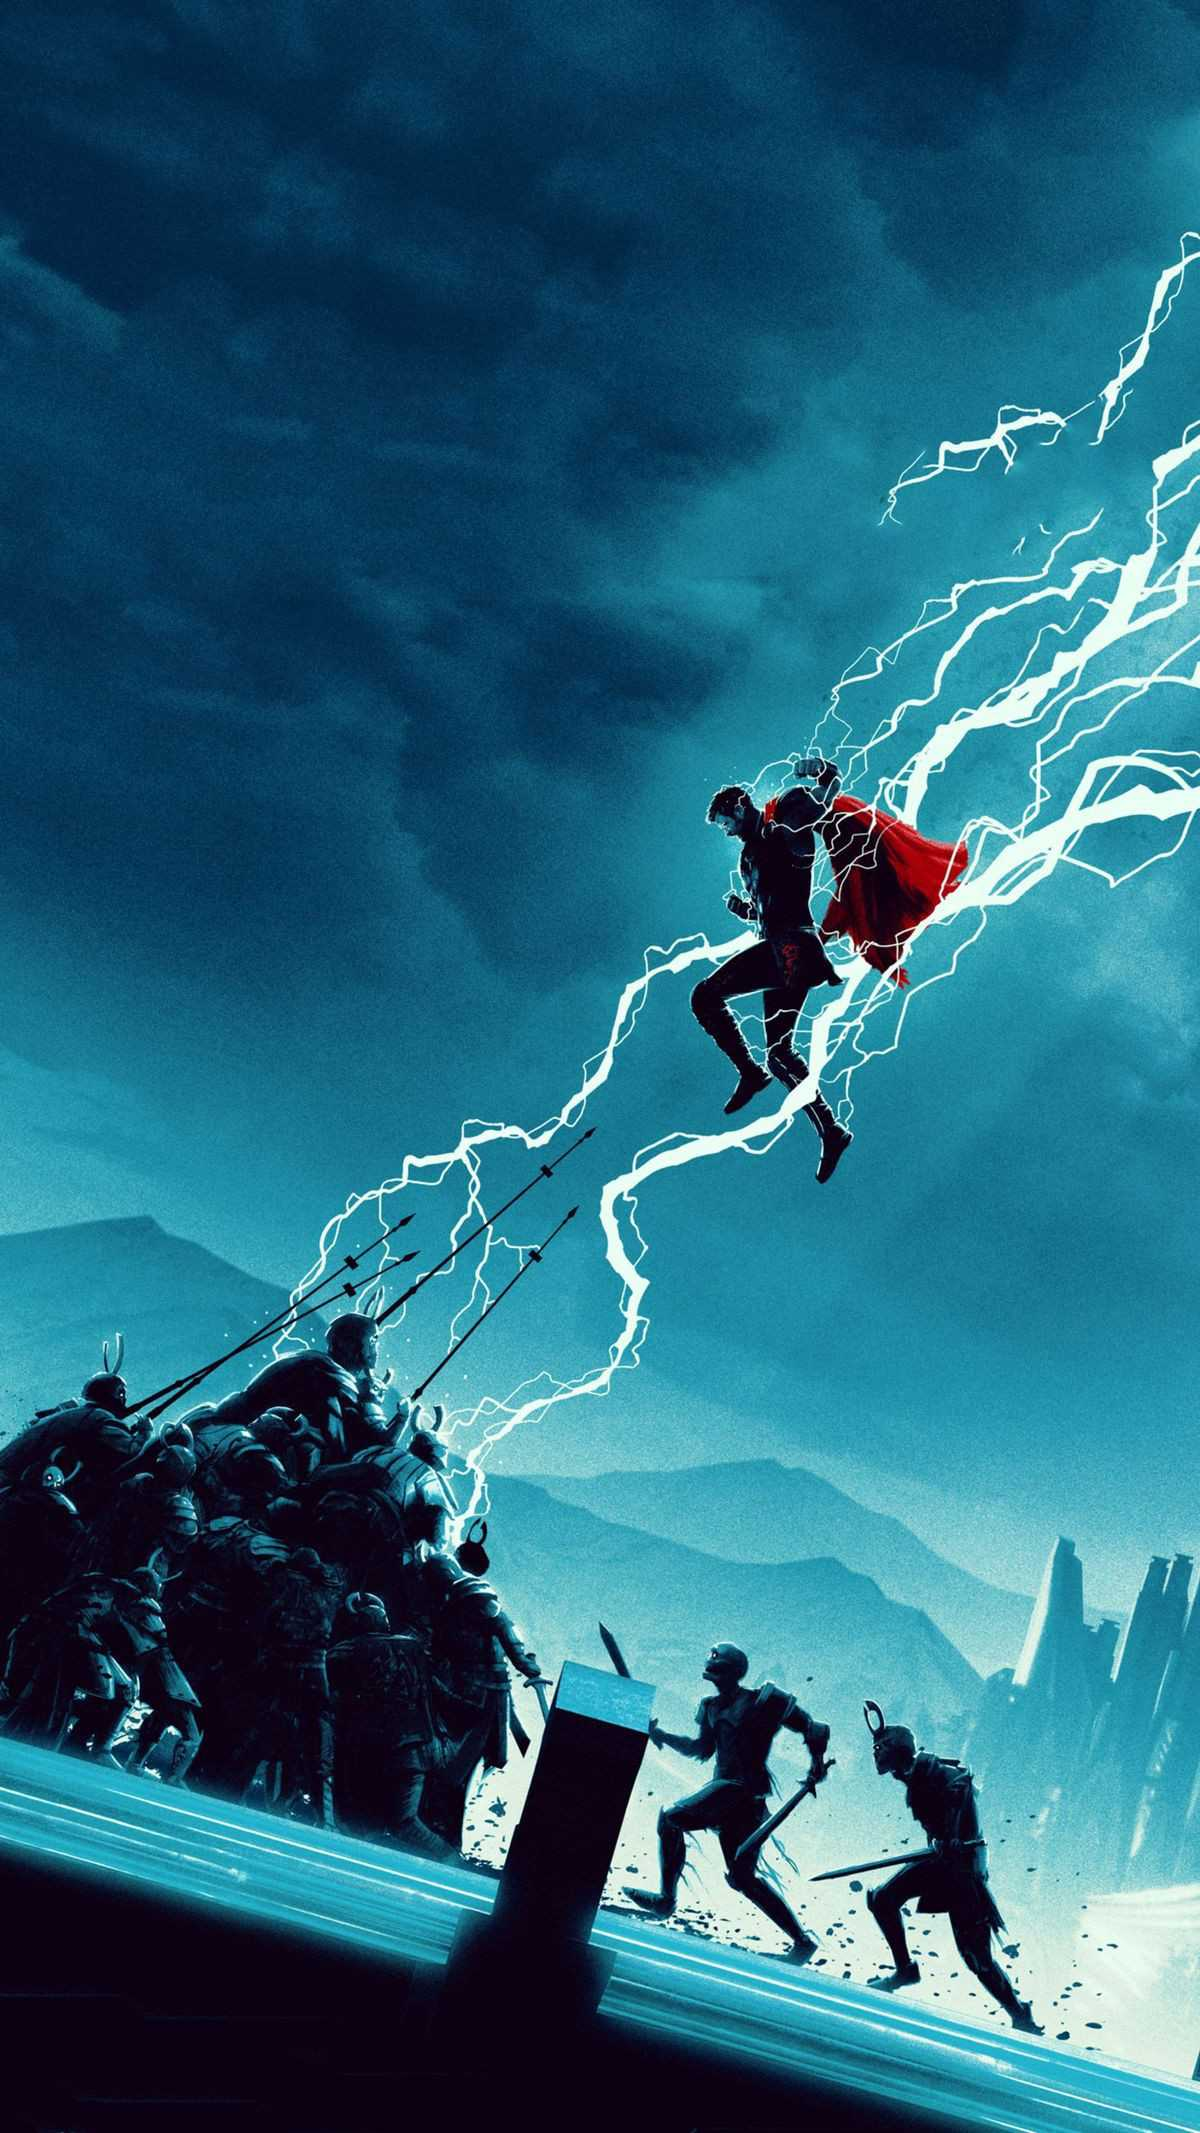 Thor Attack Avengers Endgame iPhone Wallpaper - iPhone ... Lightning Logo Design